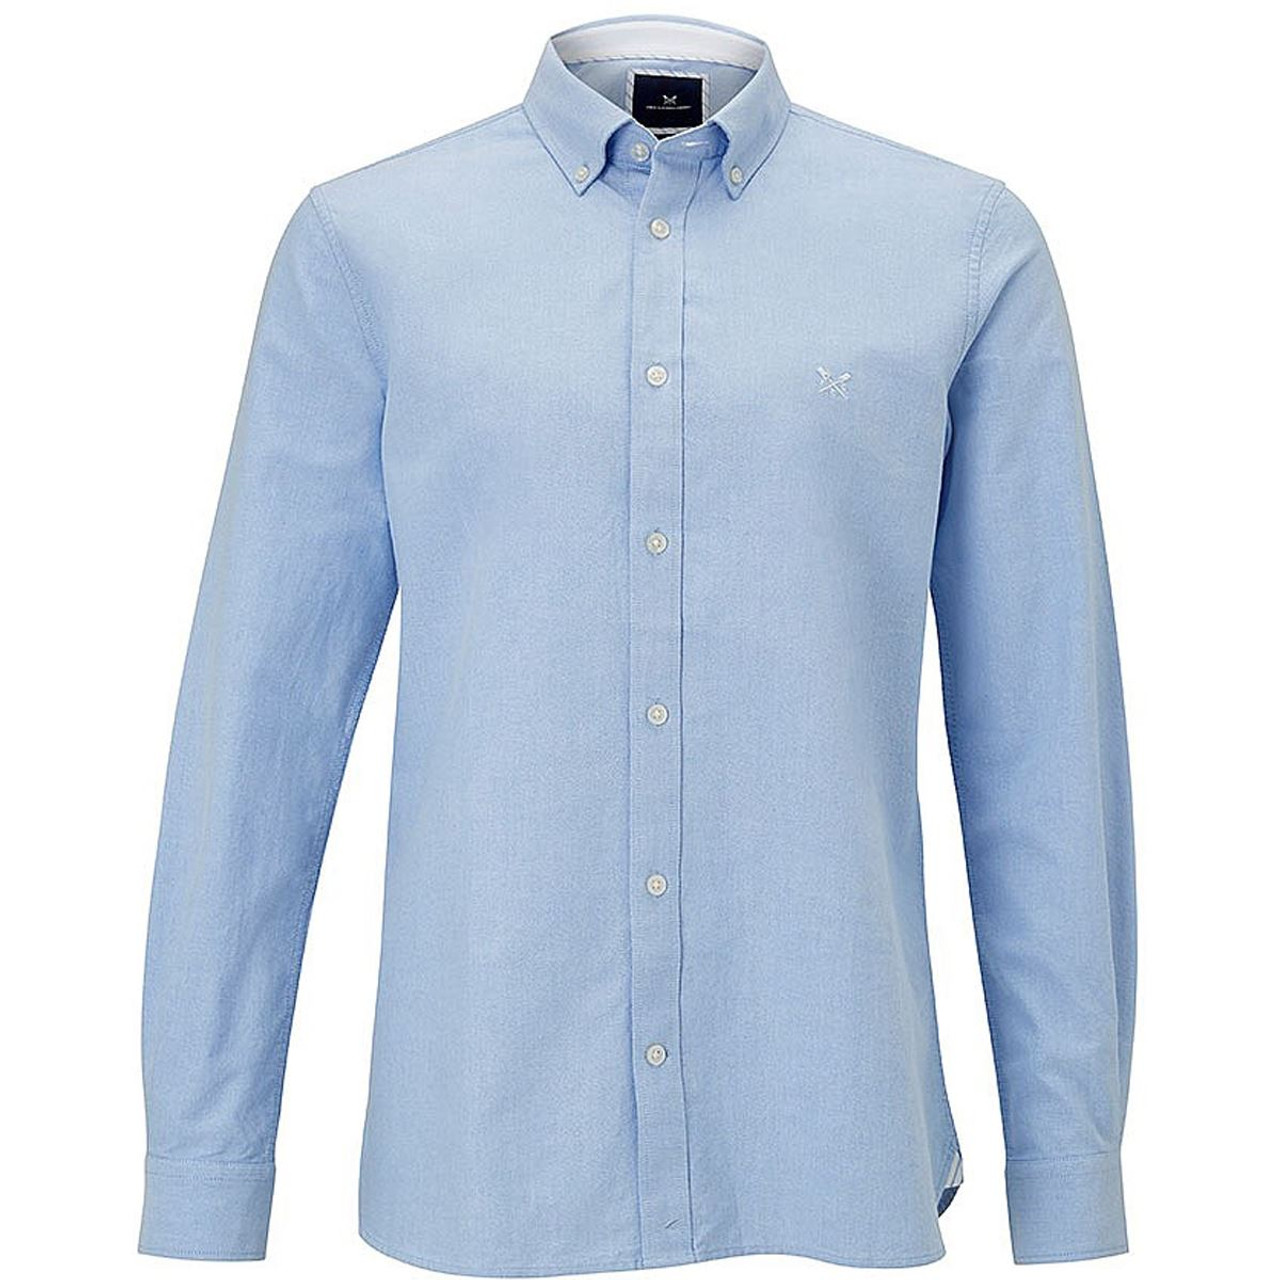 Crew Clothing Mens Slim Oxford Shirt